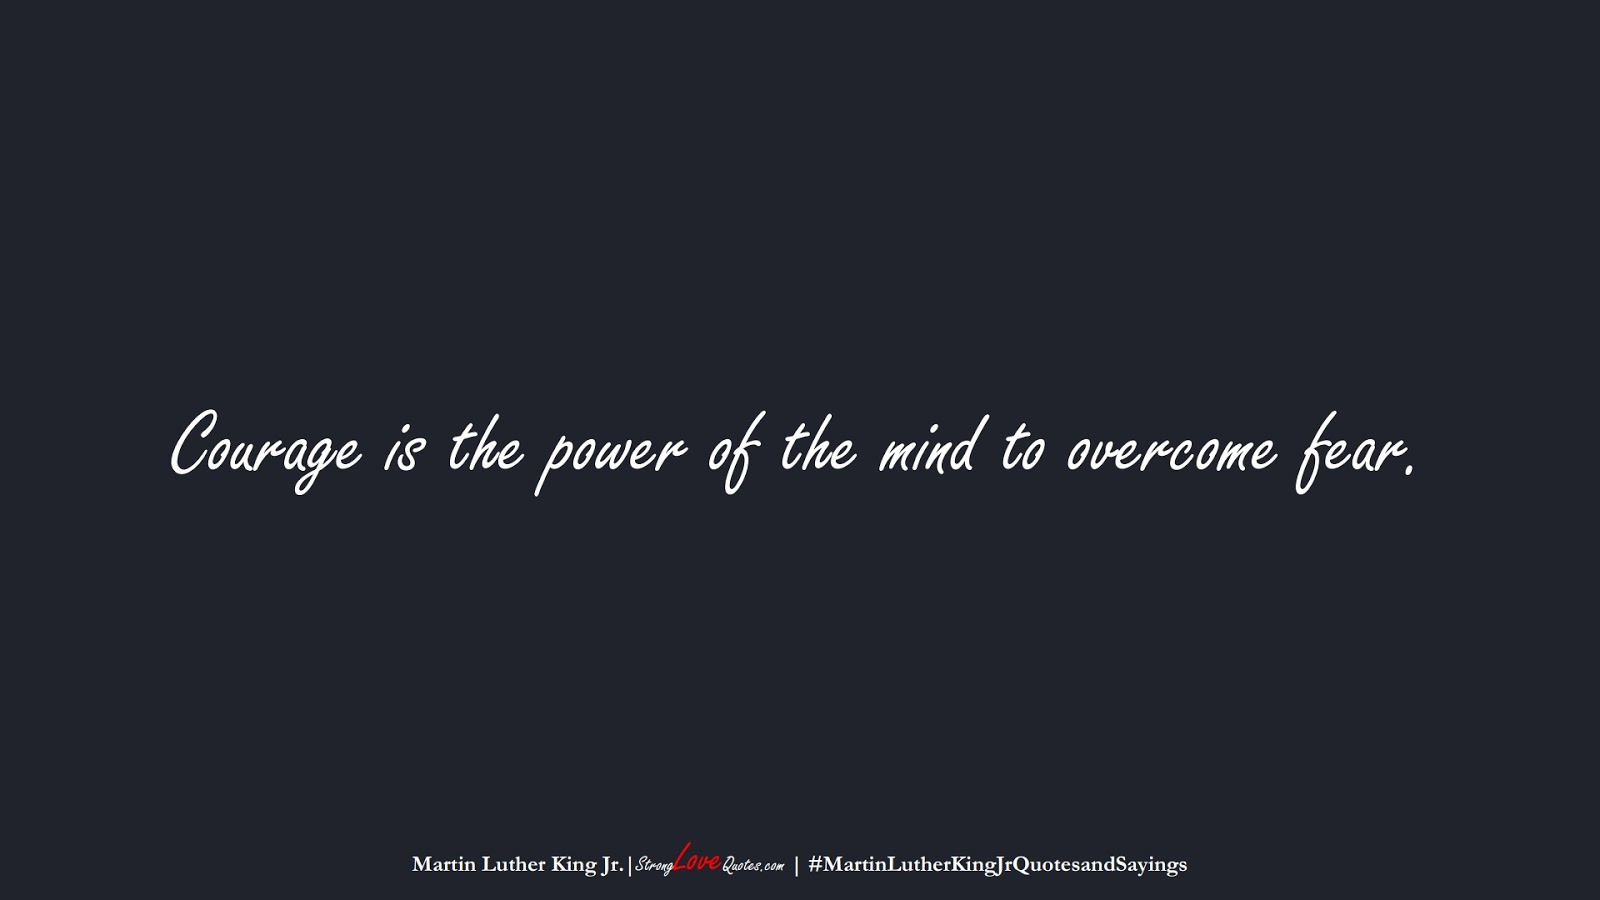 Courage is the power of the mind to overcome fear. (Martin Luther King Jr.);  #MartinLutherKingJrQuotesandSayings